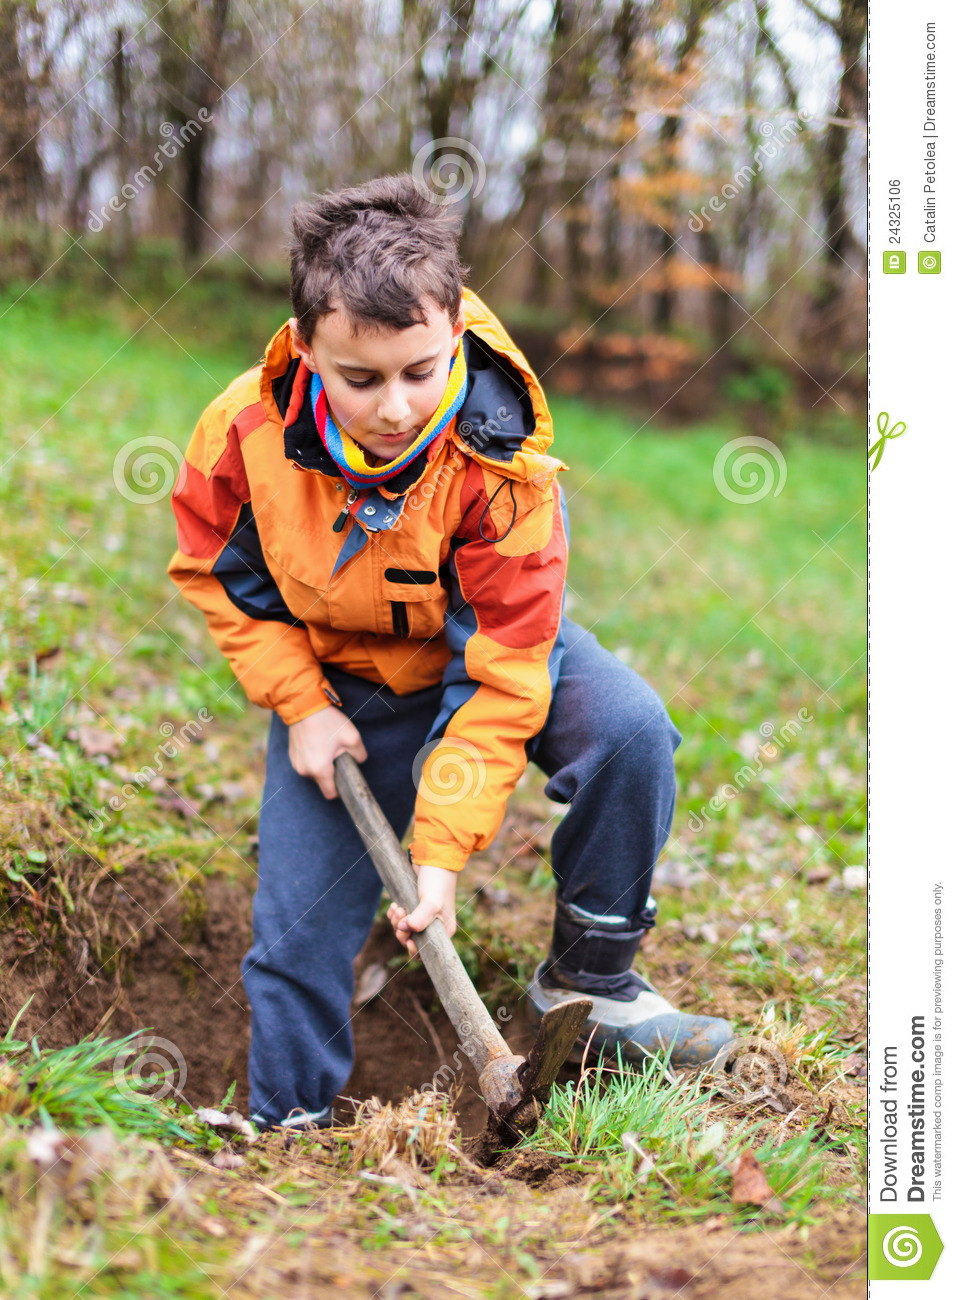 Boy digging in the ground stock photo image of lawn for Digging ground dream meaning